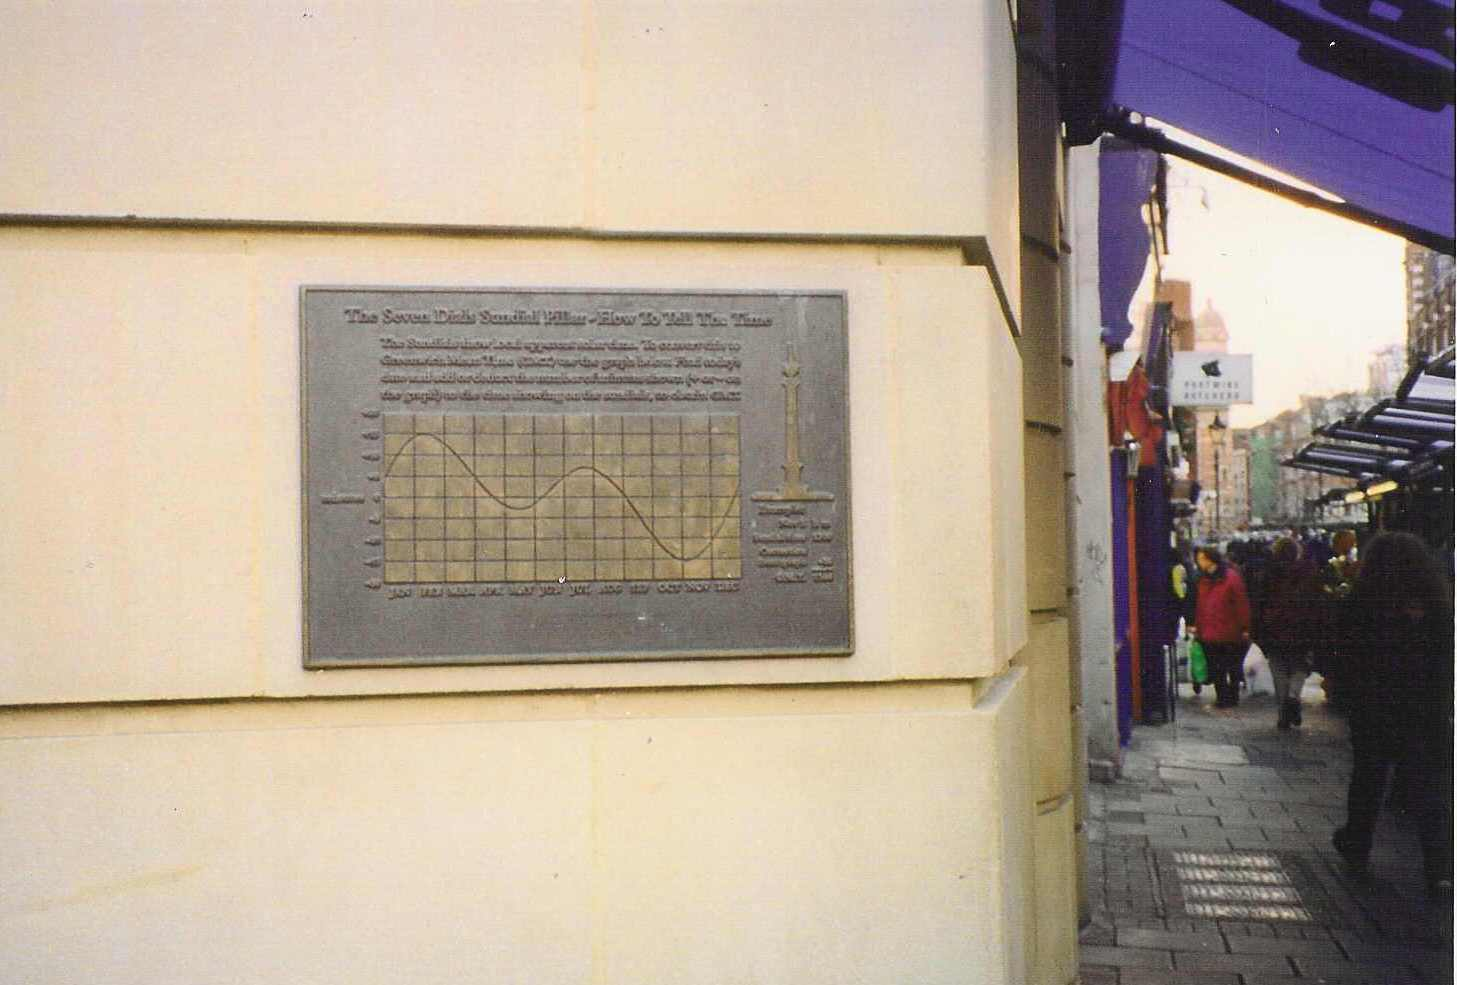 The Time Plaque sponsored by musician Dave Stewart